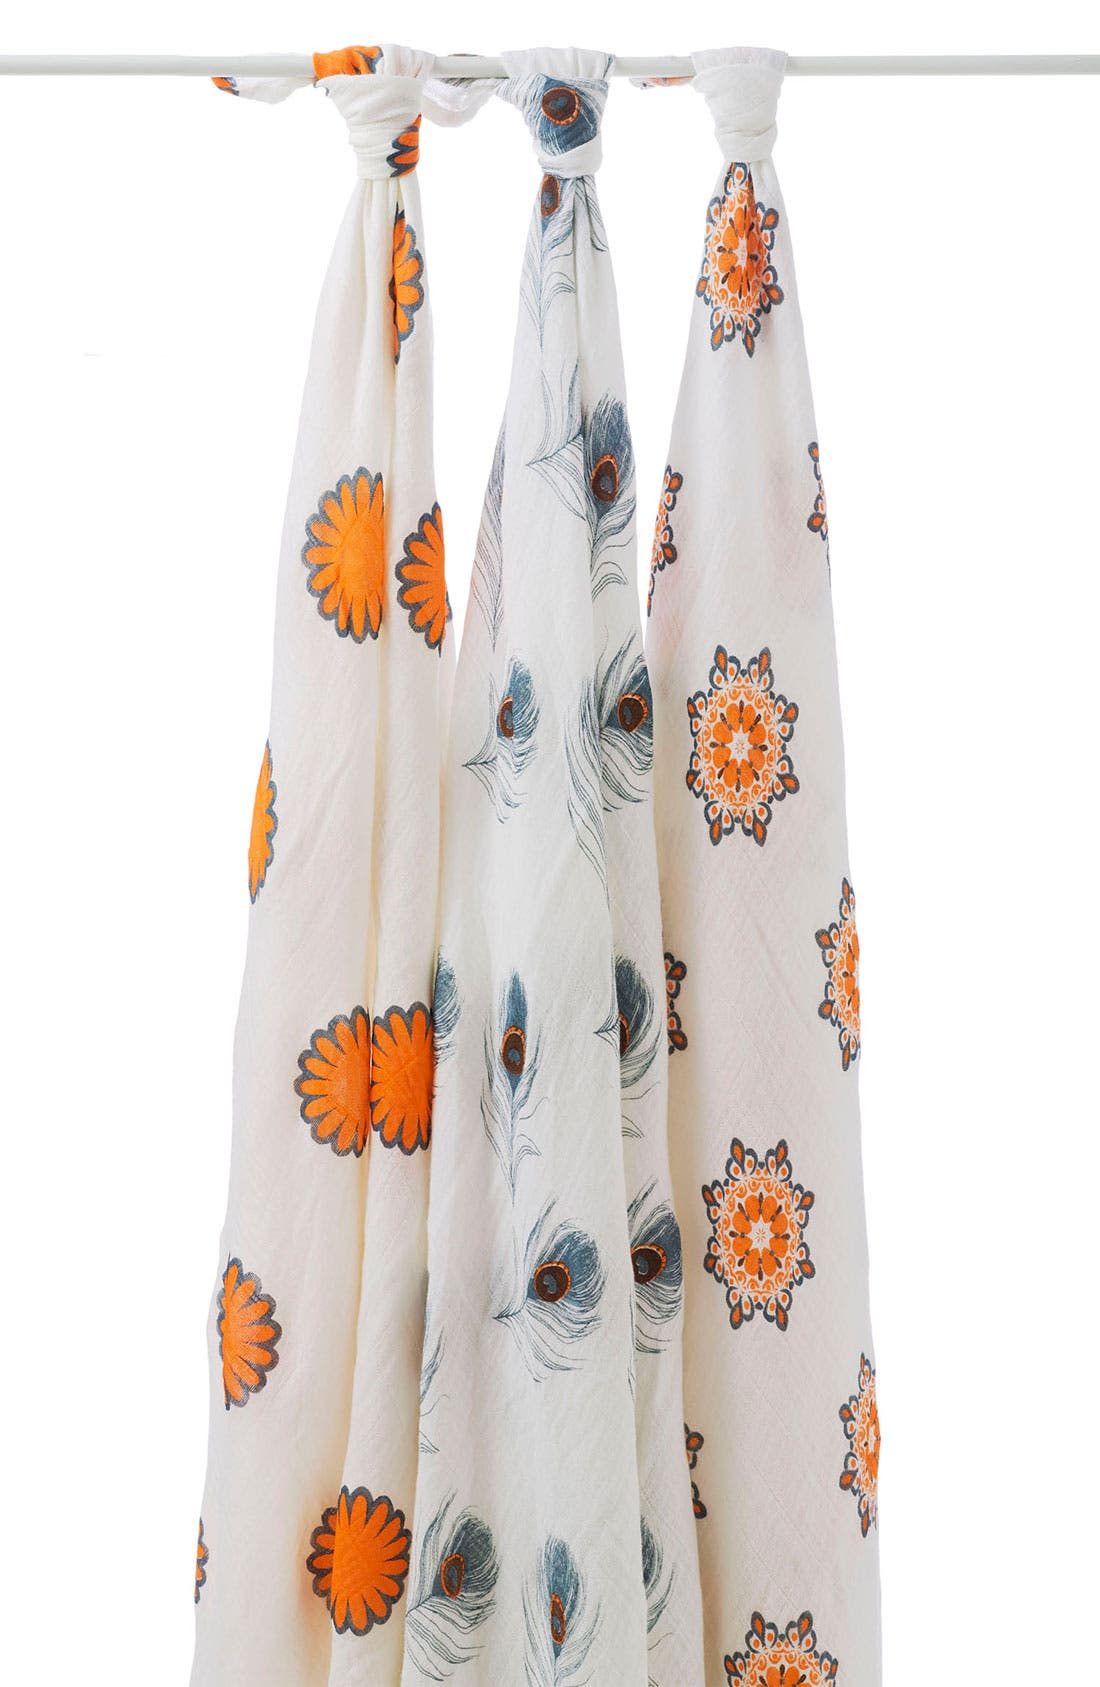 Main Image - aden + anais Swaddling Blankets (3-Pack)